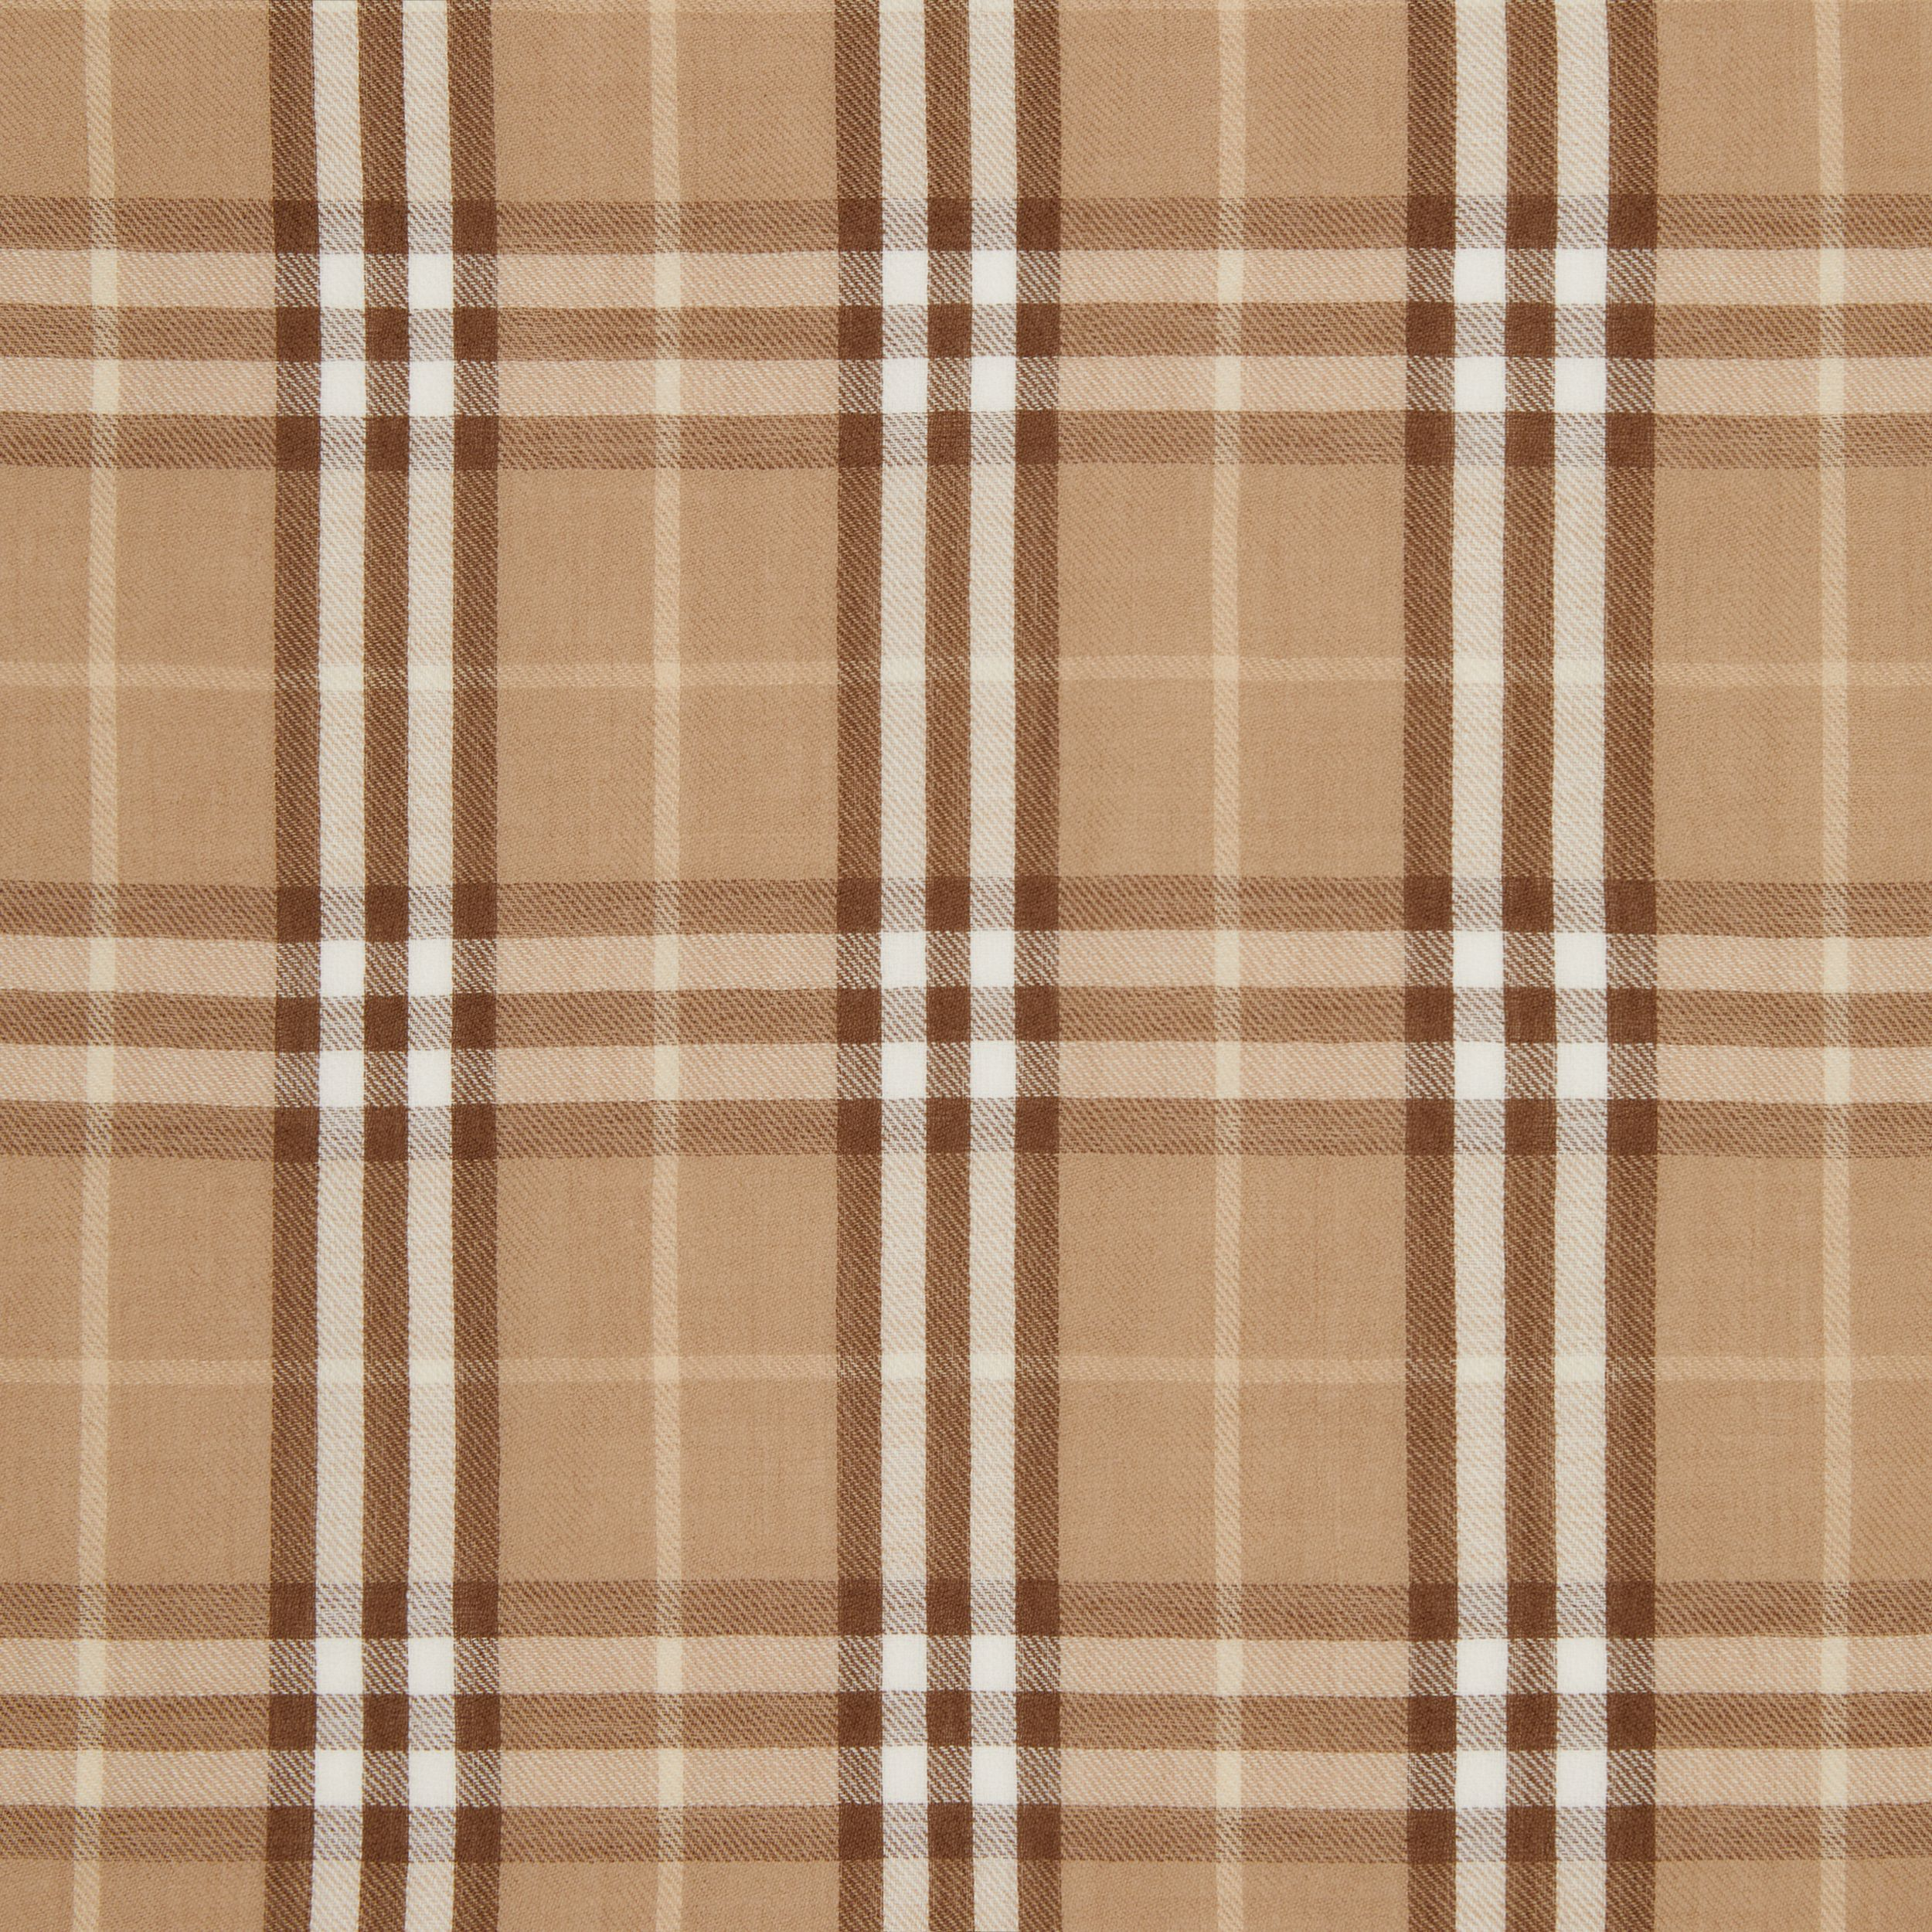 Vintage Check Lightweight Cashmere Scarf in Mid Camel | Burberry - 2